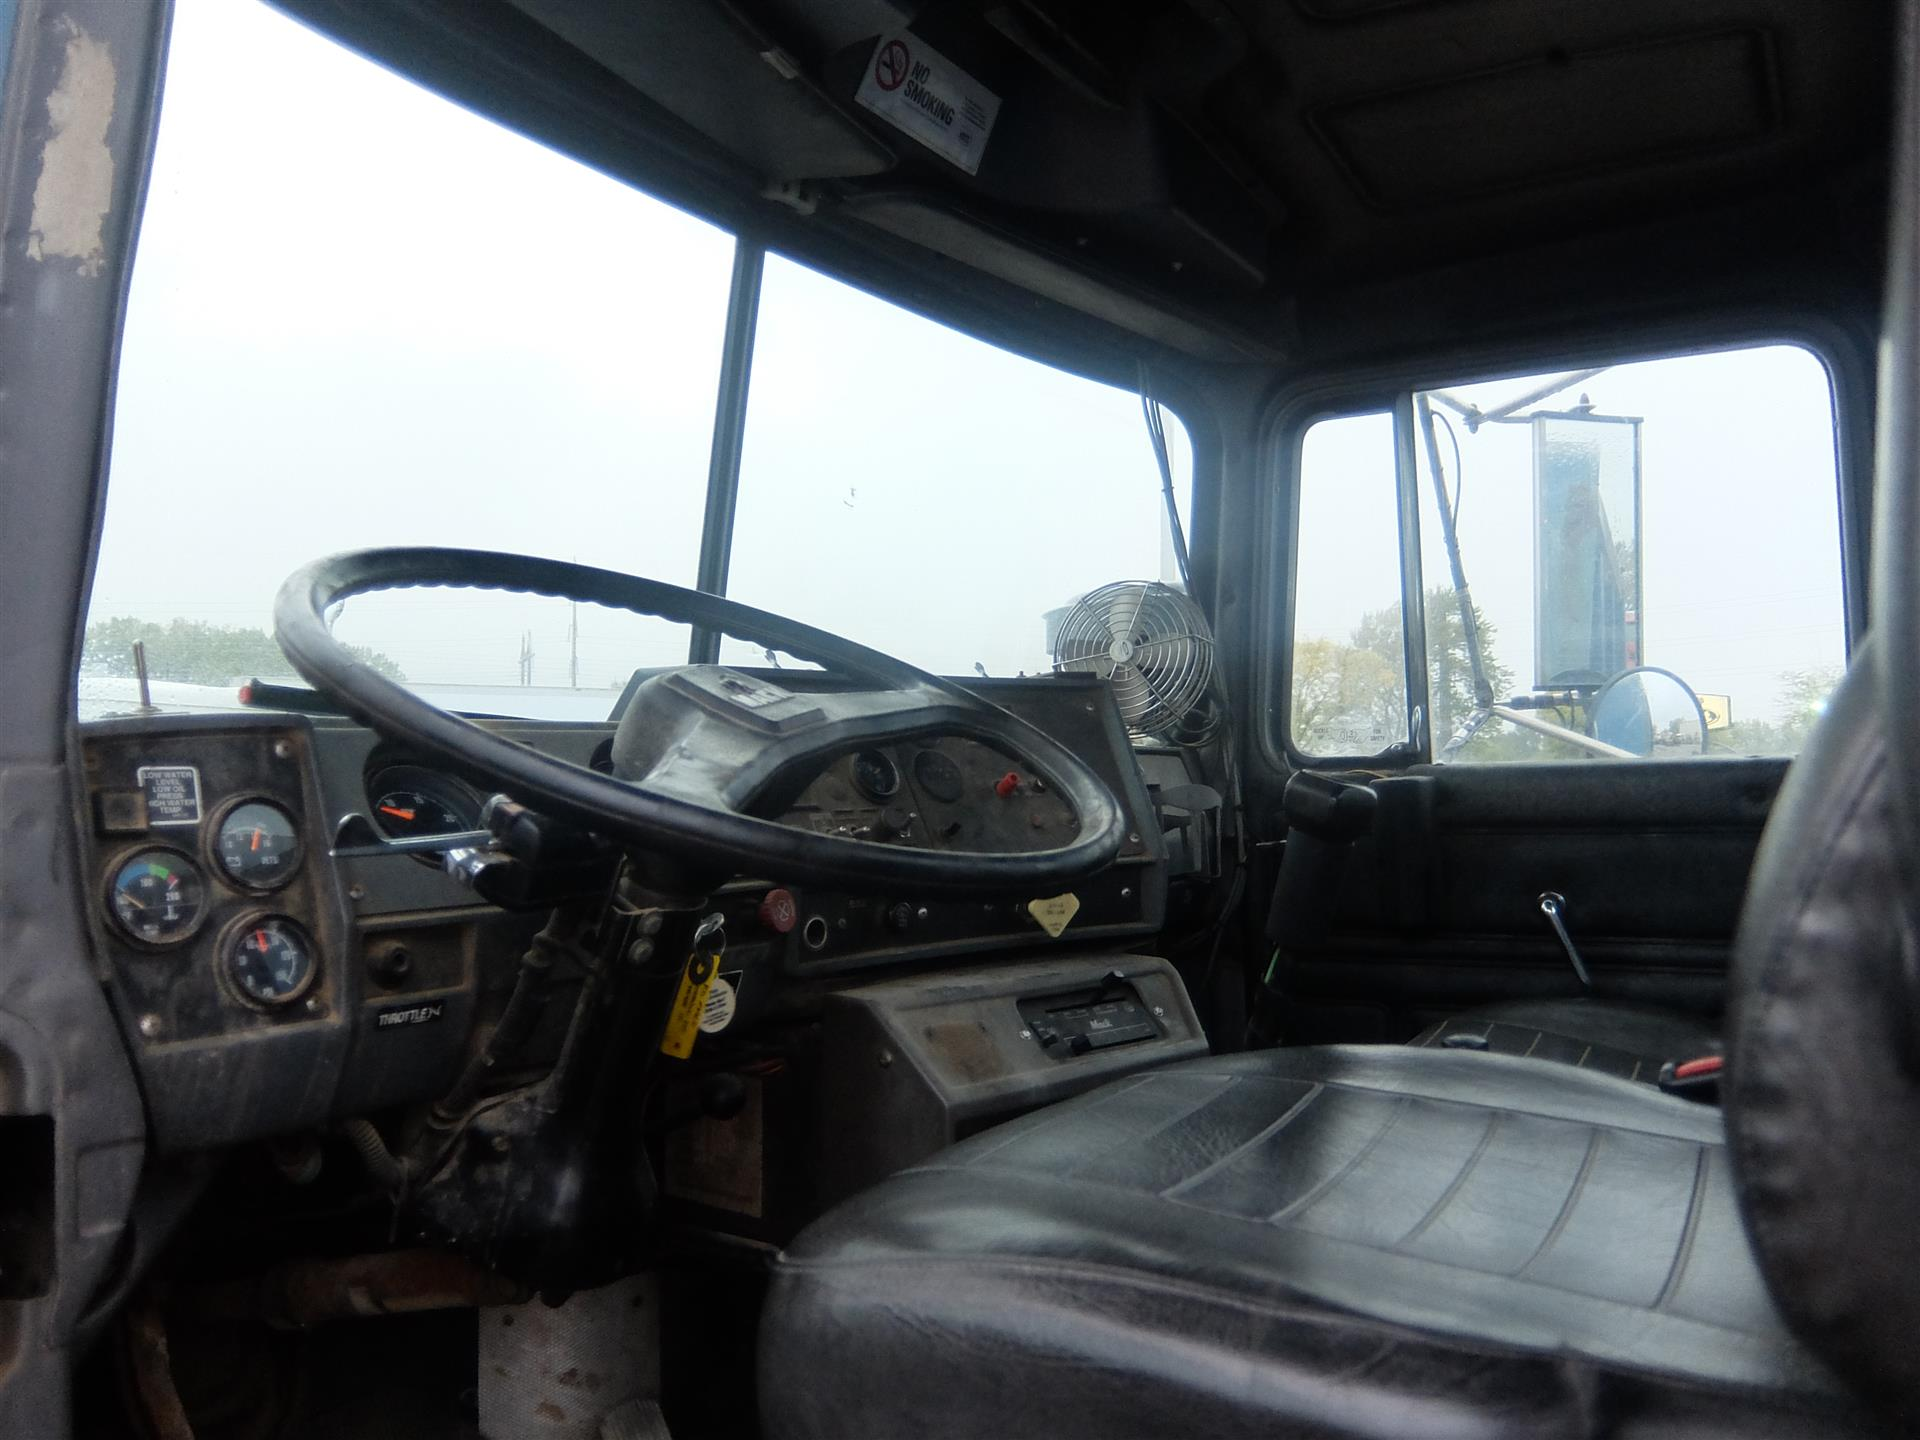 1992 Mack rd690s for sale-59108625